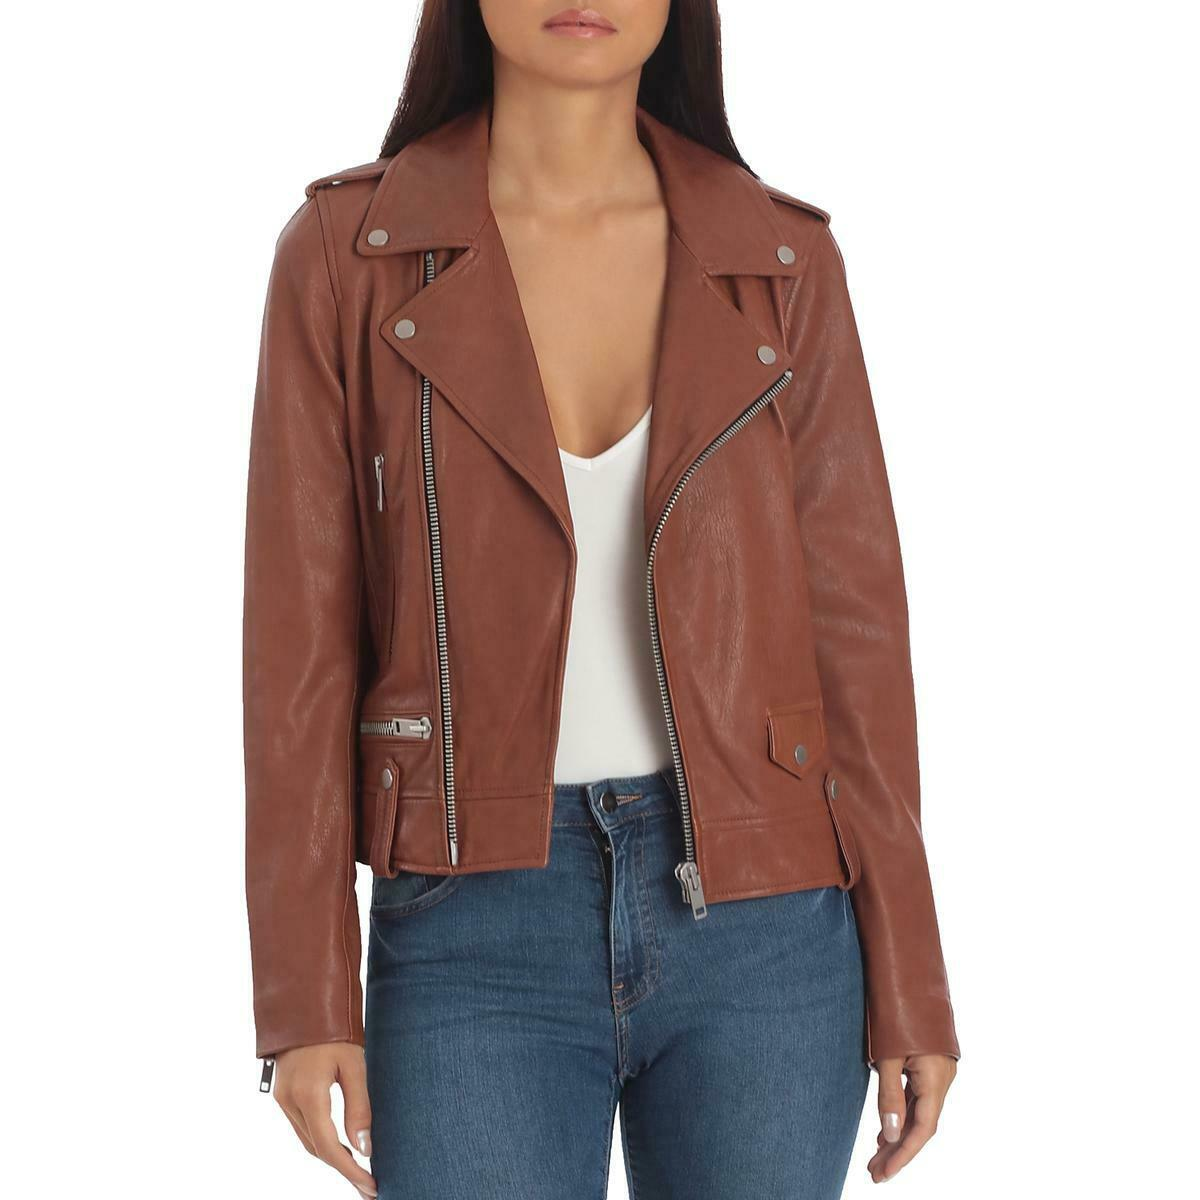 Bagatelle Womens Brown Genuine Leather Fall Motorcycle Jacket Coat M BHFO 1313